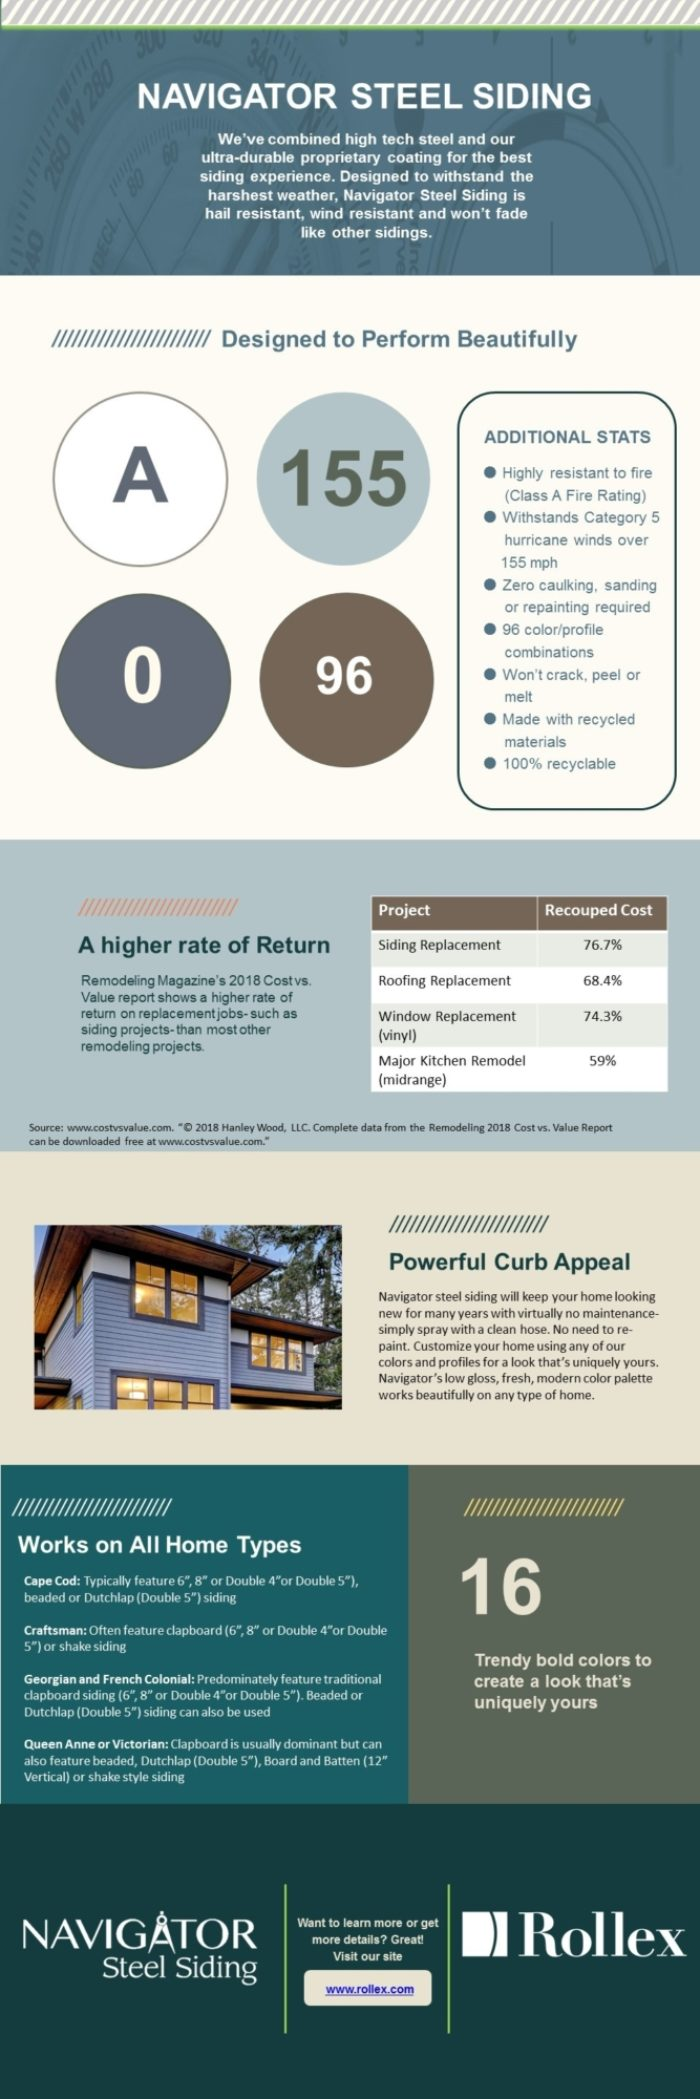 Navigator-steel-siding-infographic-plaza